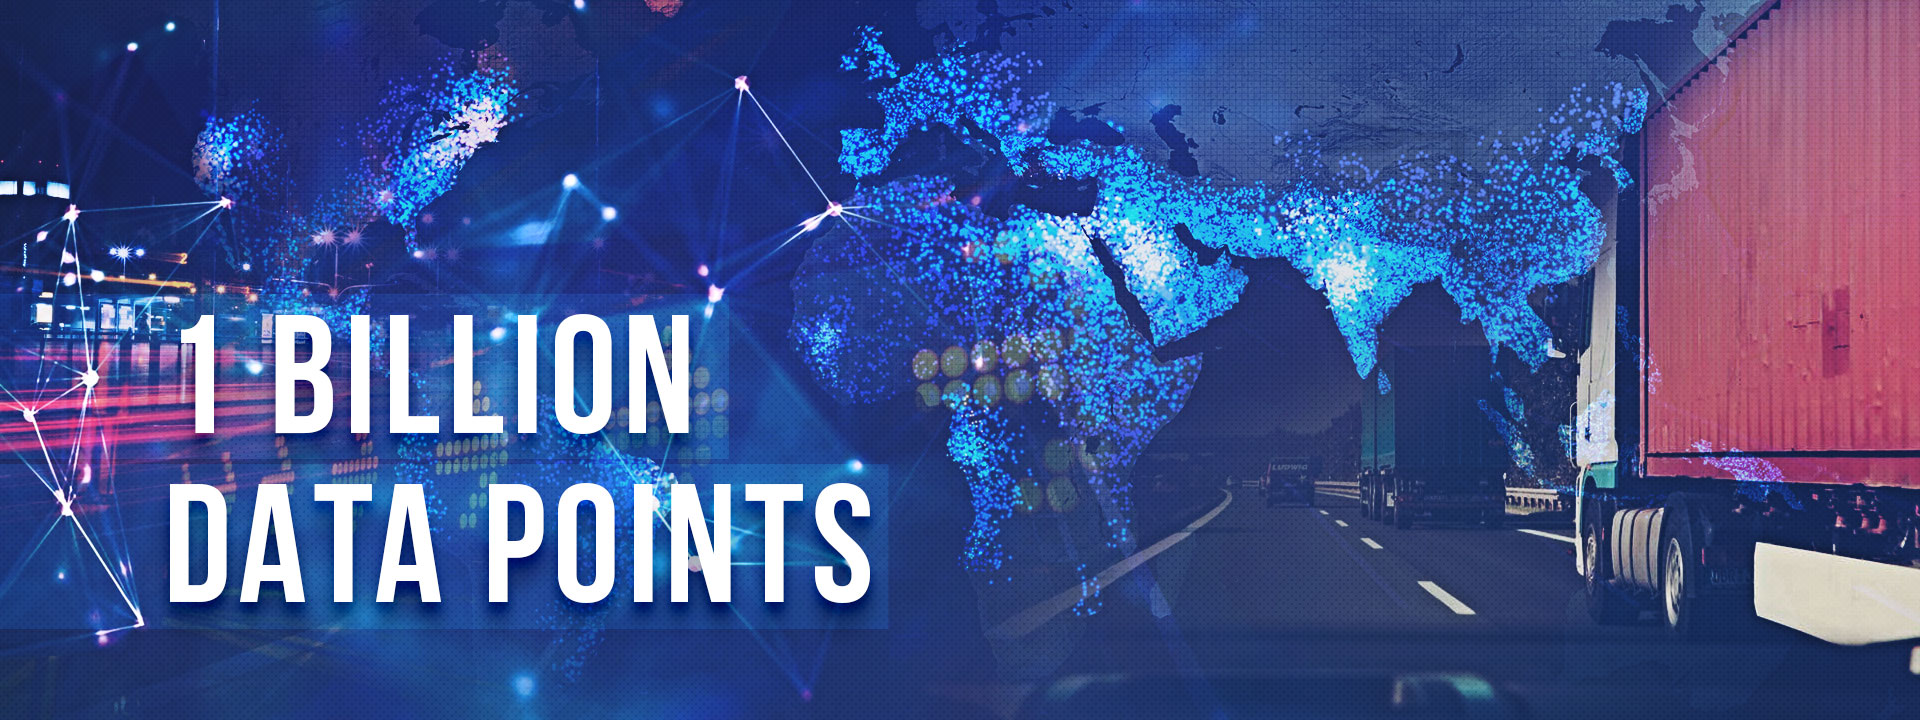 Billion Data Points! LogiNext Reaches a Milestone Untouched by Most in Enterprise Mobility Solutions!